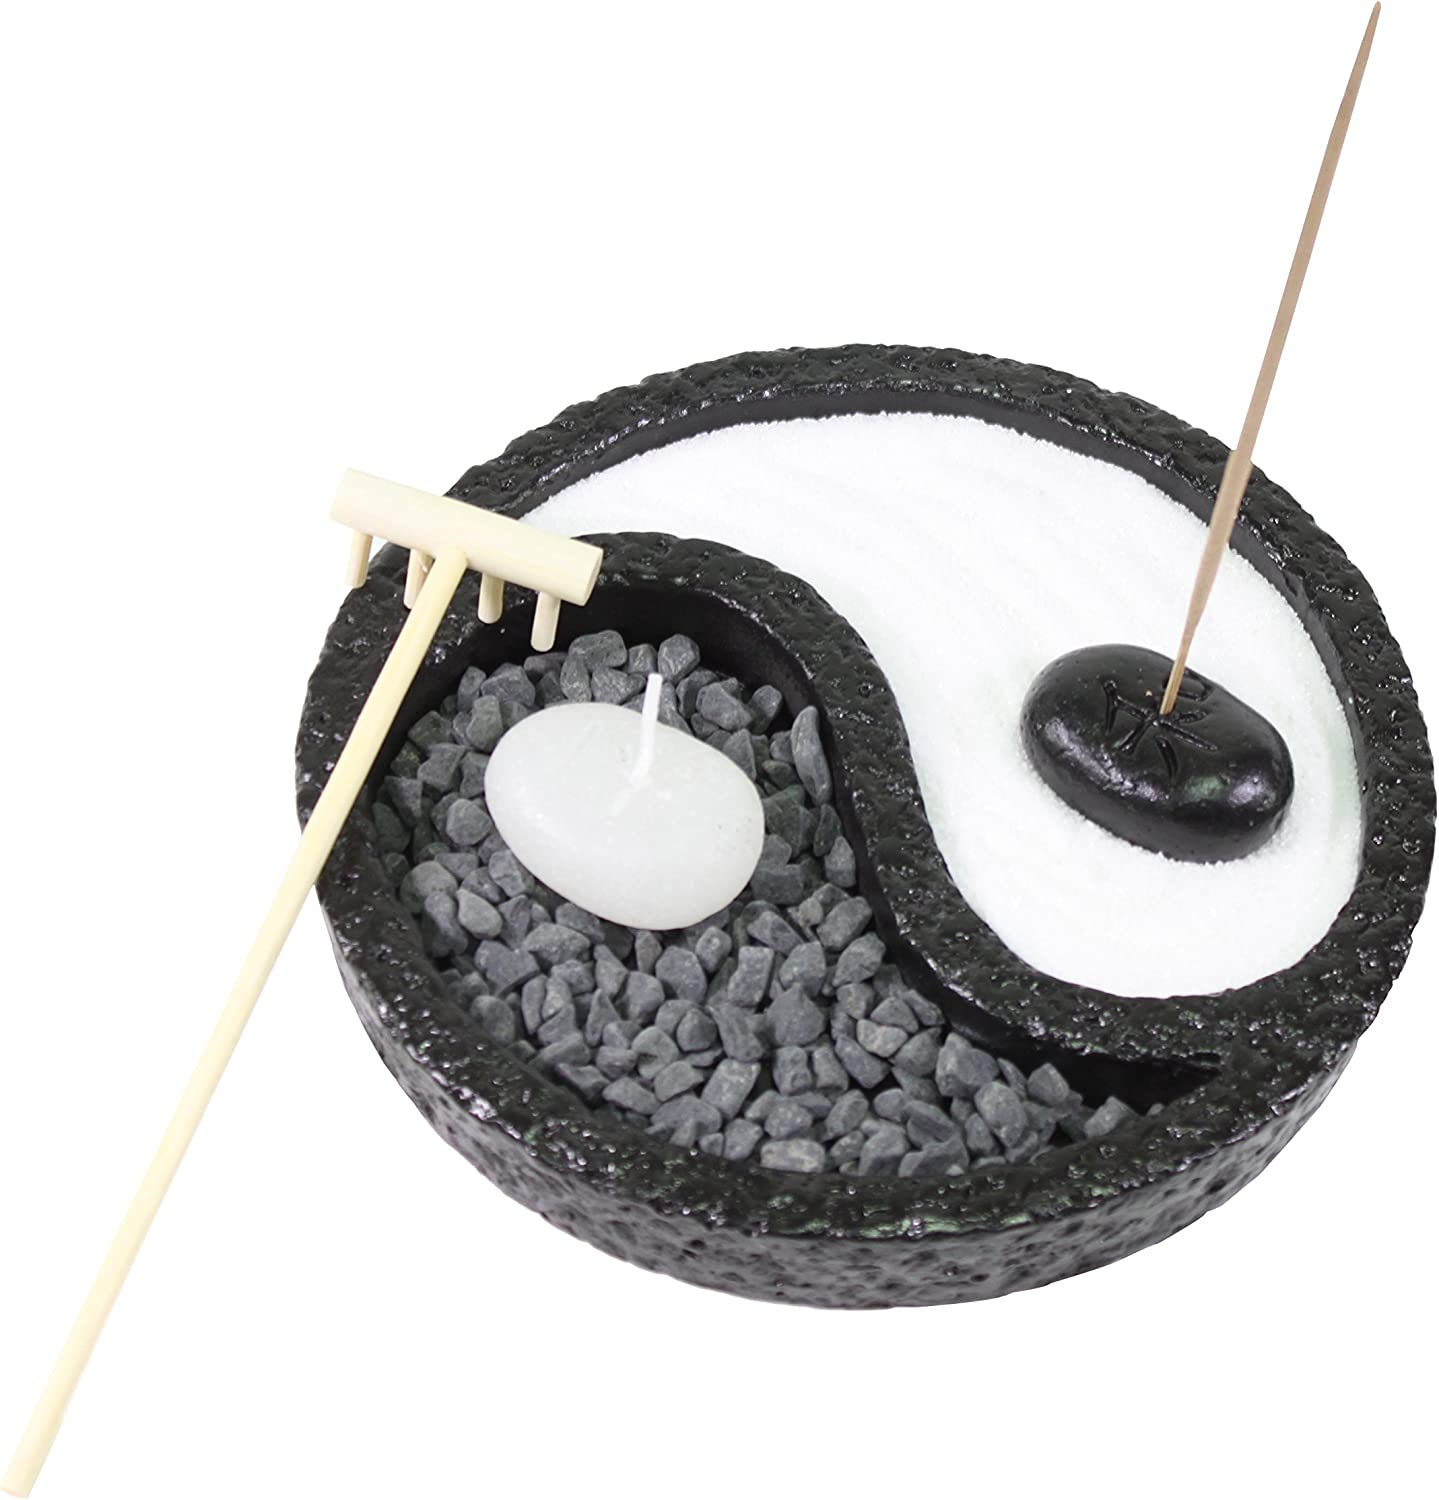 Tabletop Taiji Yin Yang Zen Garden Sand Rock Candle Incense Burner Gifr & Home Decor